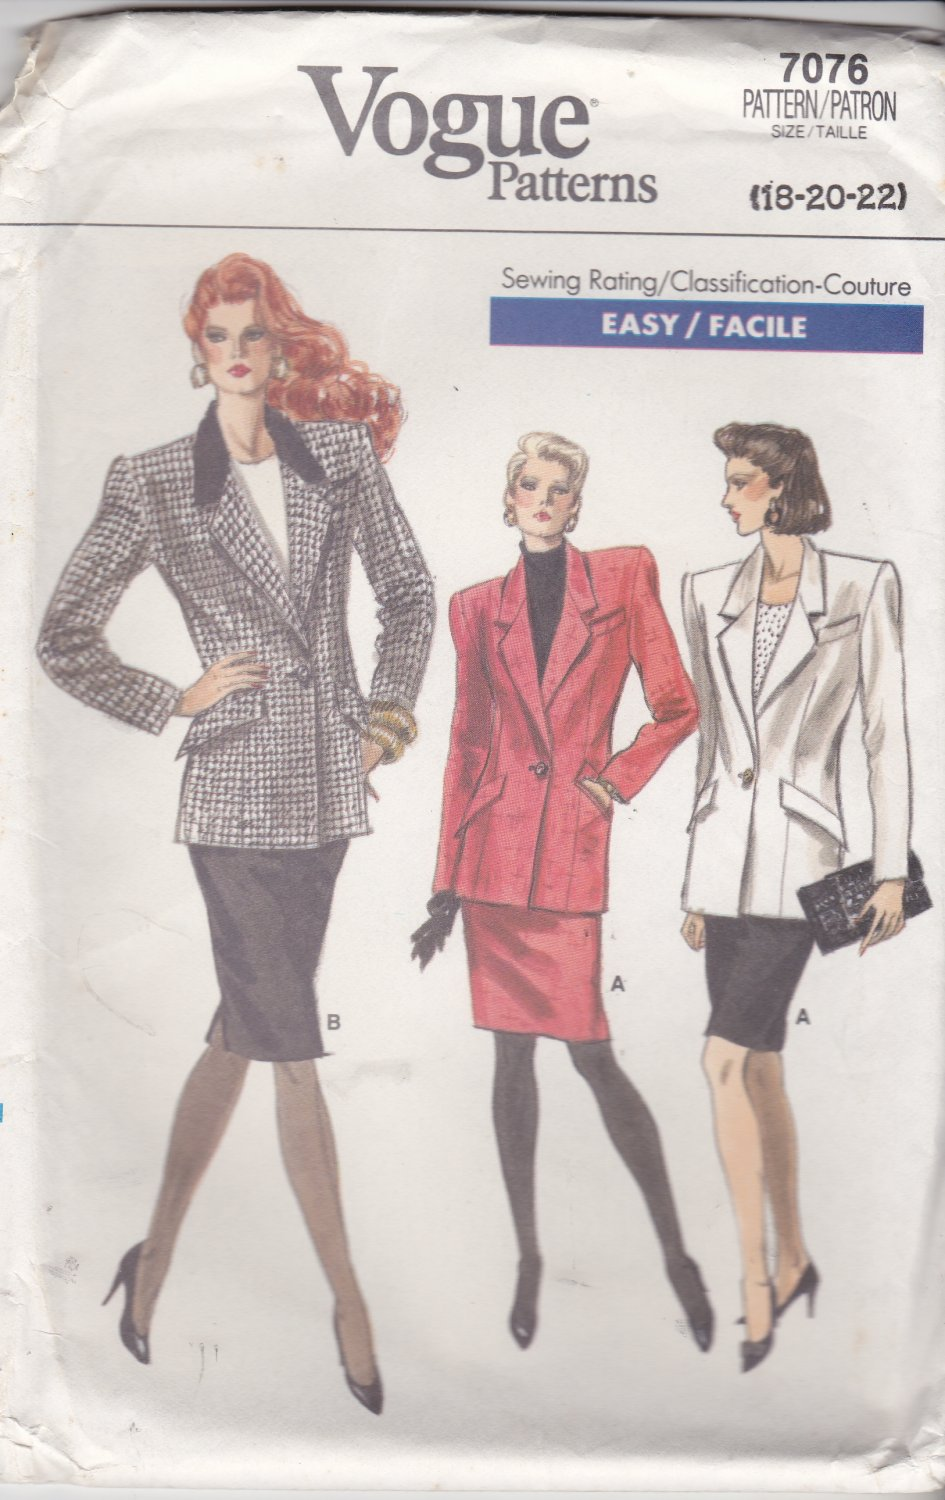 Retro Vogue Sewing Pattern 7076 Misses Size 18-22 Easy Lined Jacket Straight Skirt Suit